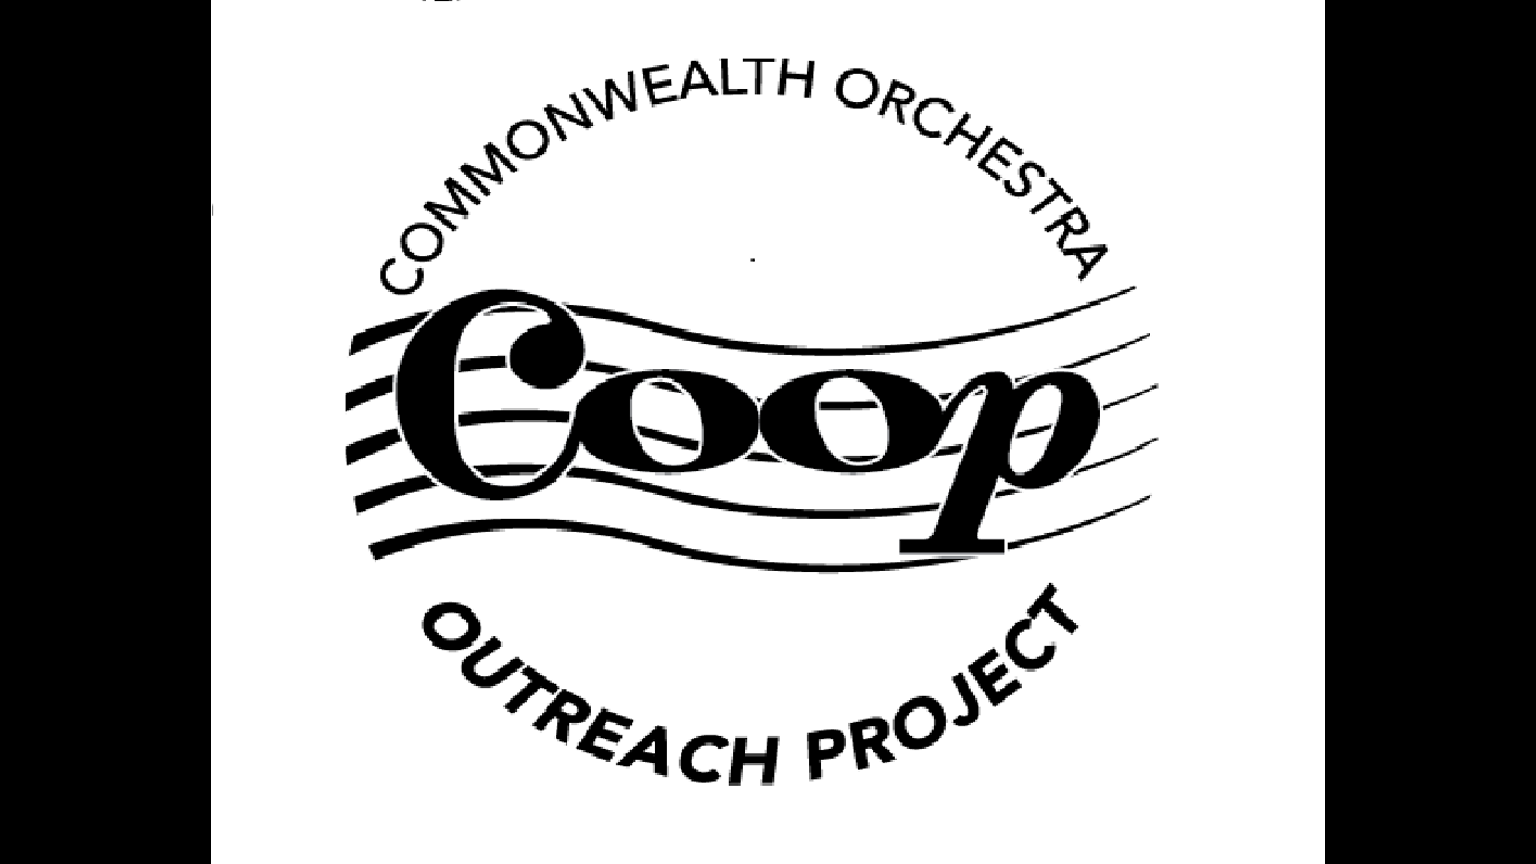 Commonwealth Orchestra Outreach Project by Lucinda Ellert